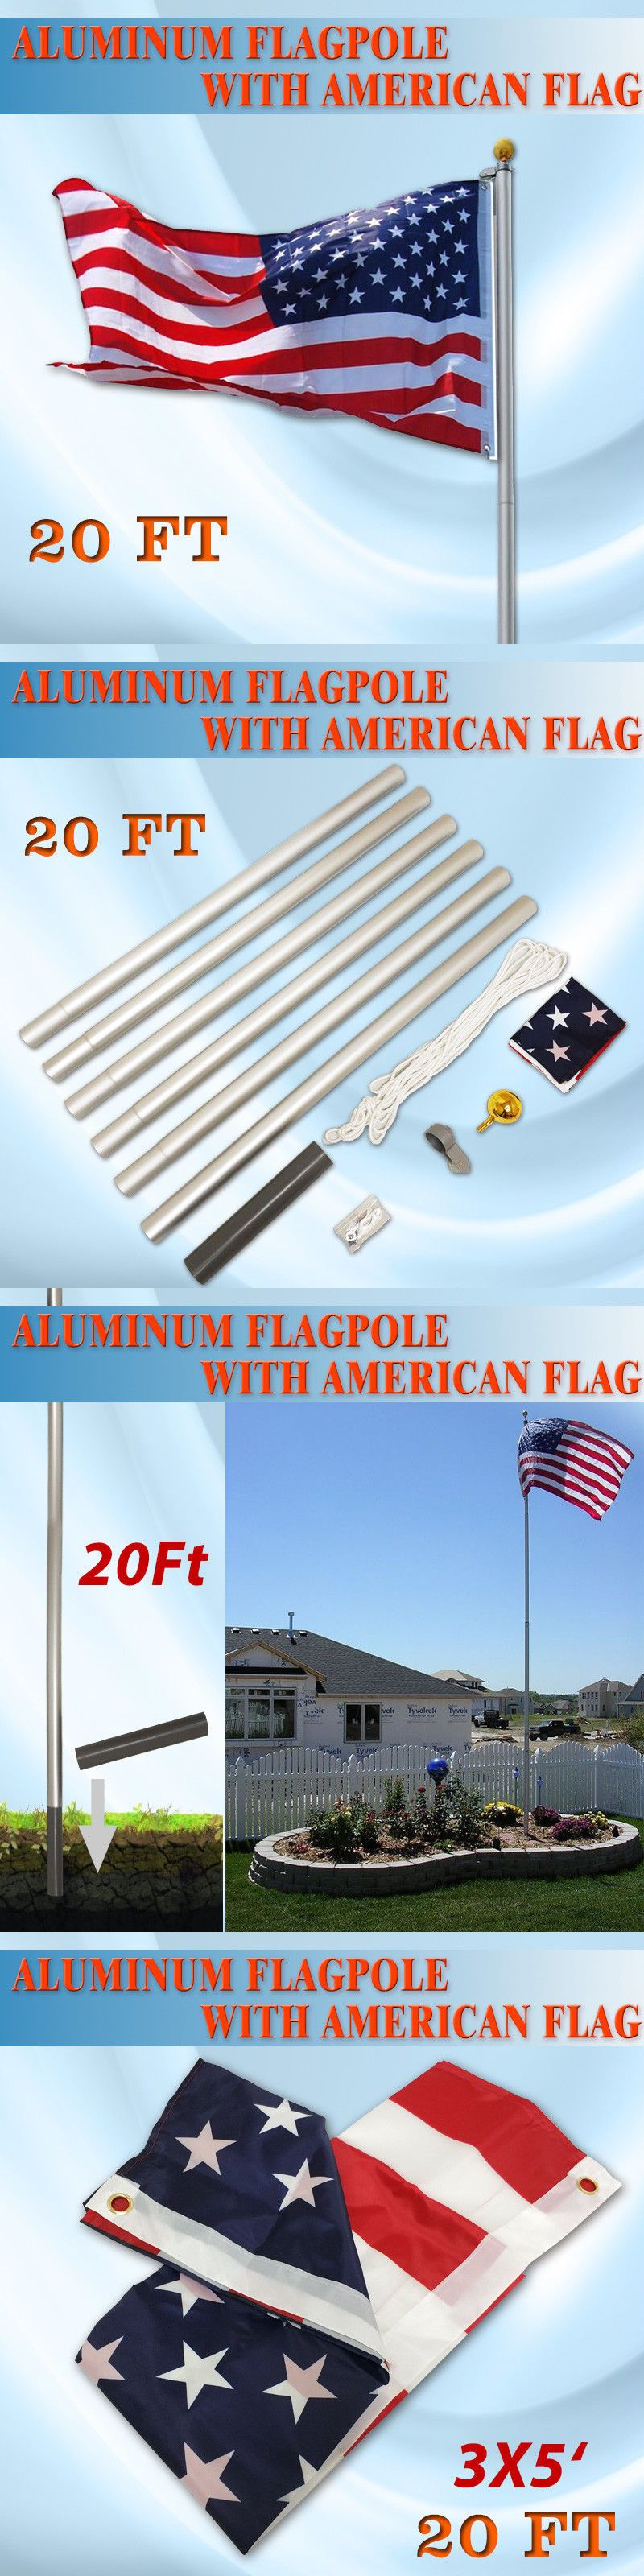 Flag Poles And Parts 43536 20ft Aluminum Sectional Flag Pole Kit Outdoor Gold Ball Us Flag Buy It Now Only 33 99 On Ebay Flag Pole Kits Flag Pole Flag